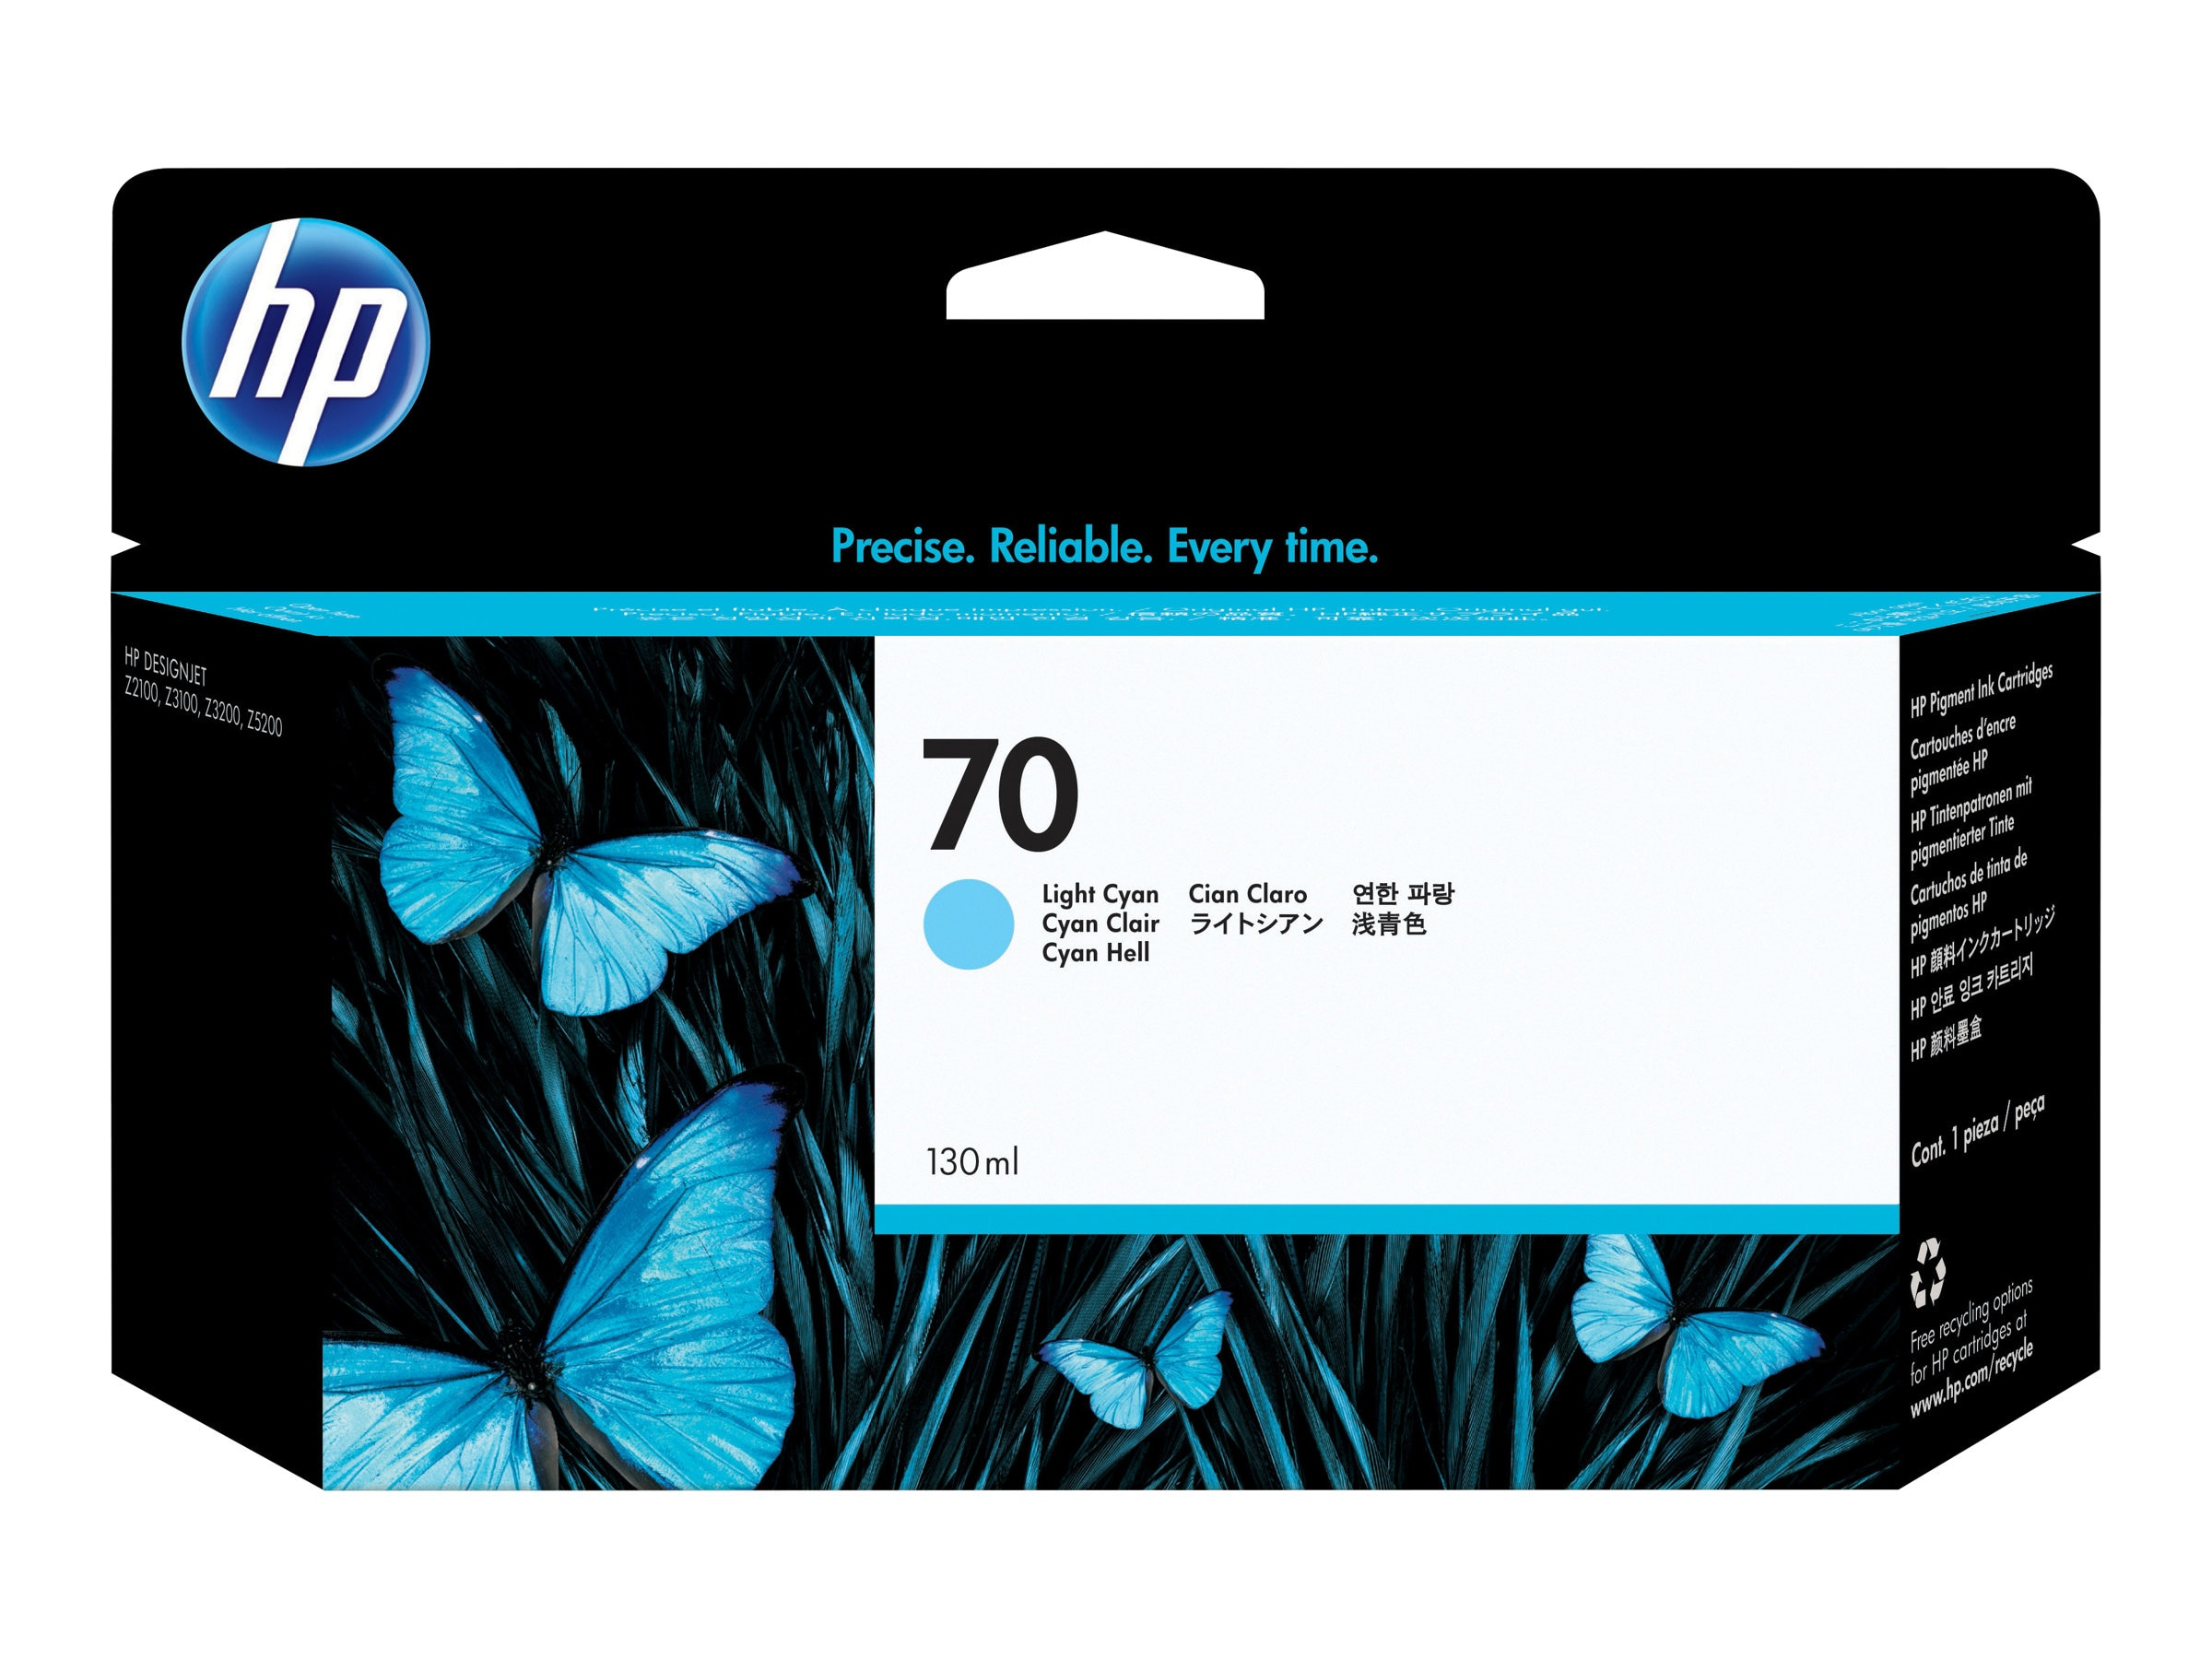 HP 70 Light Cyan Ink Cartridge for HP DeskJet Z2100 & Z3100 Printers